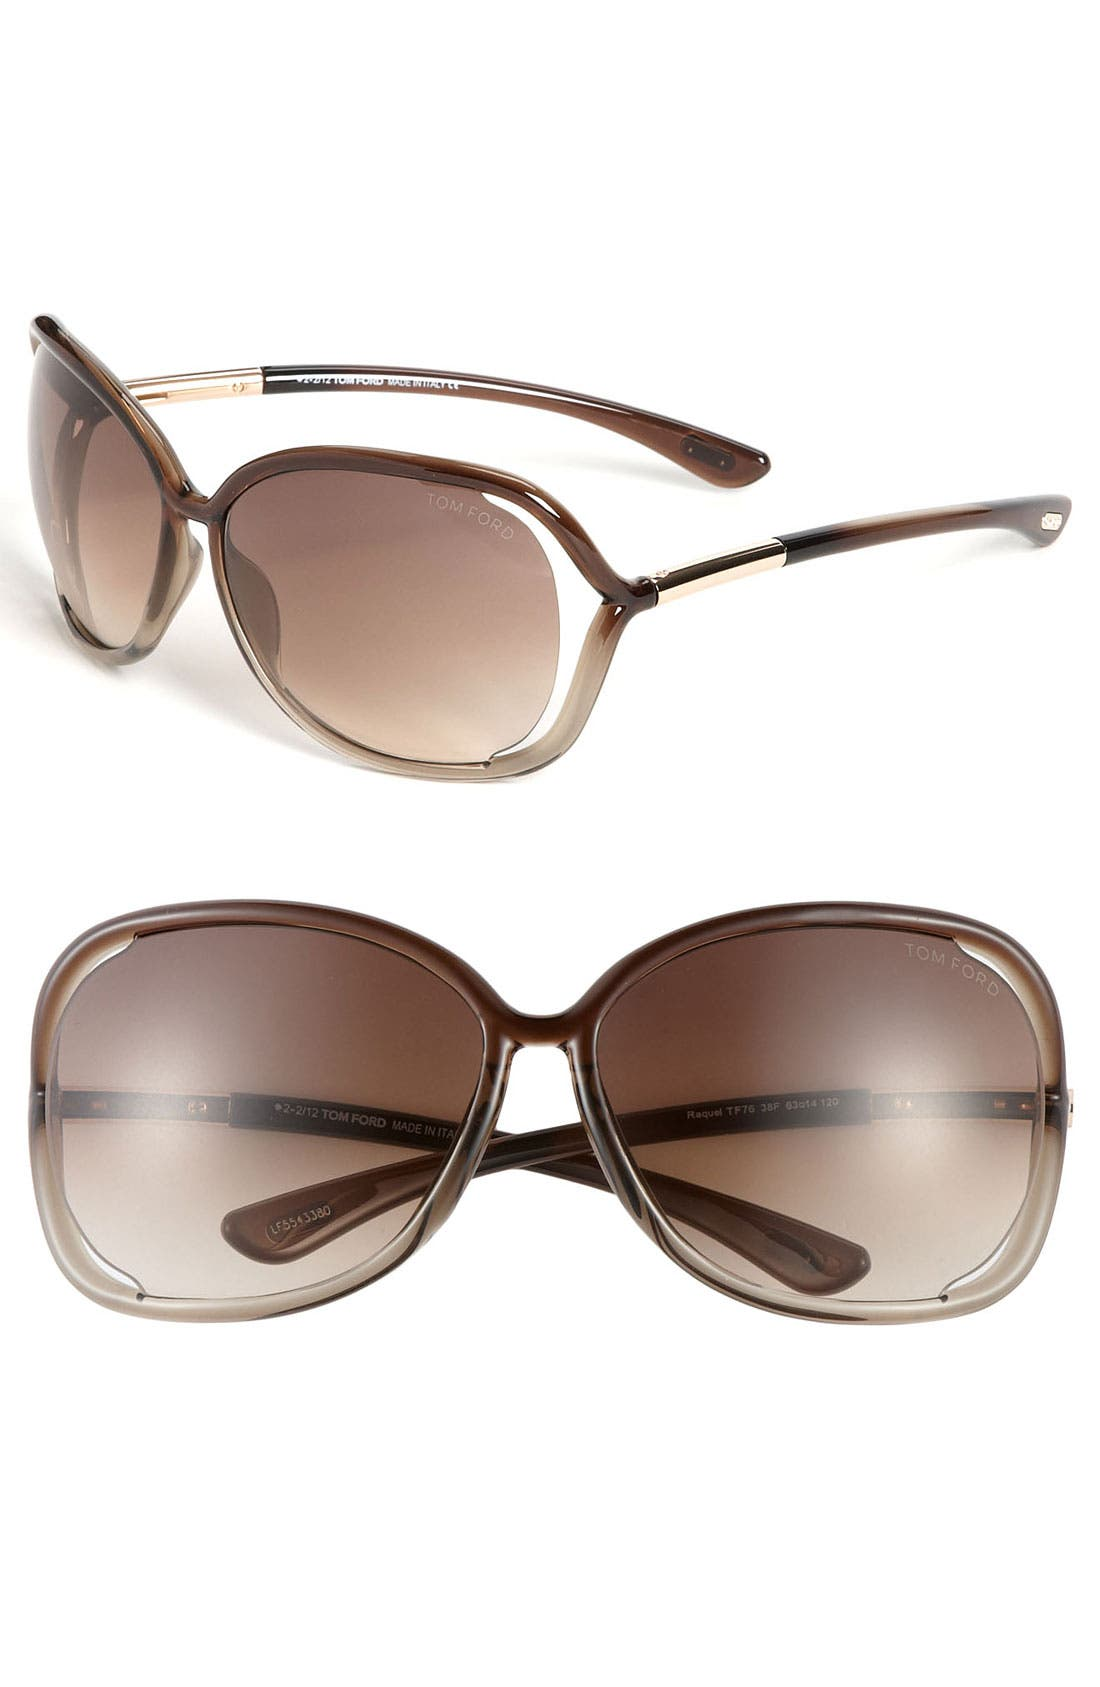 Alternate Image 1 Selected - Tom Ford 'Raquel' 63mm Oversized Open Side Sunglasses